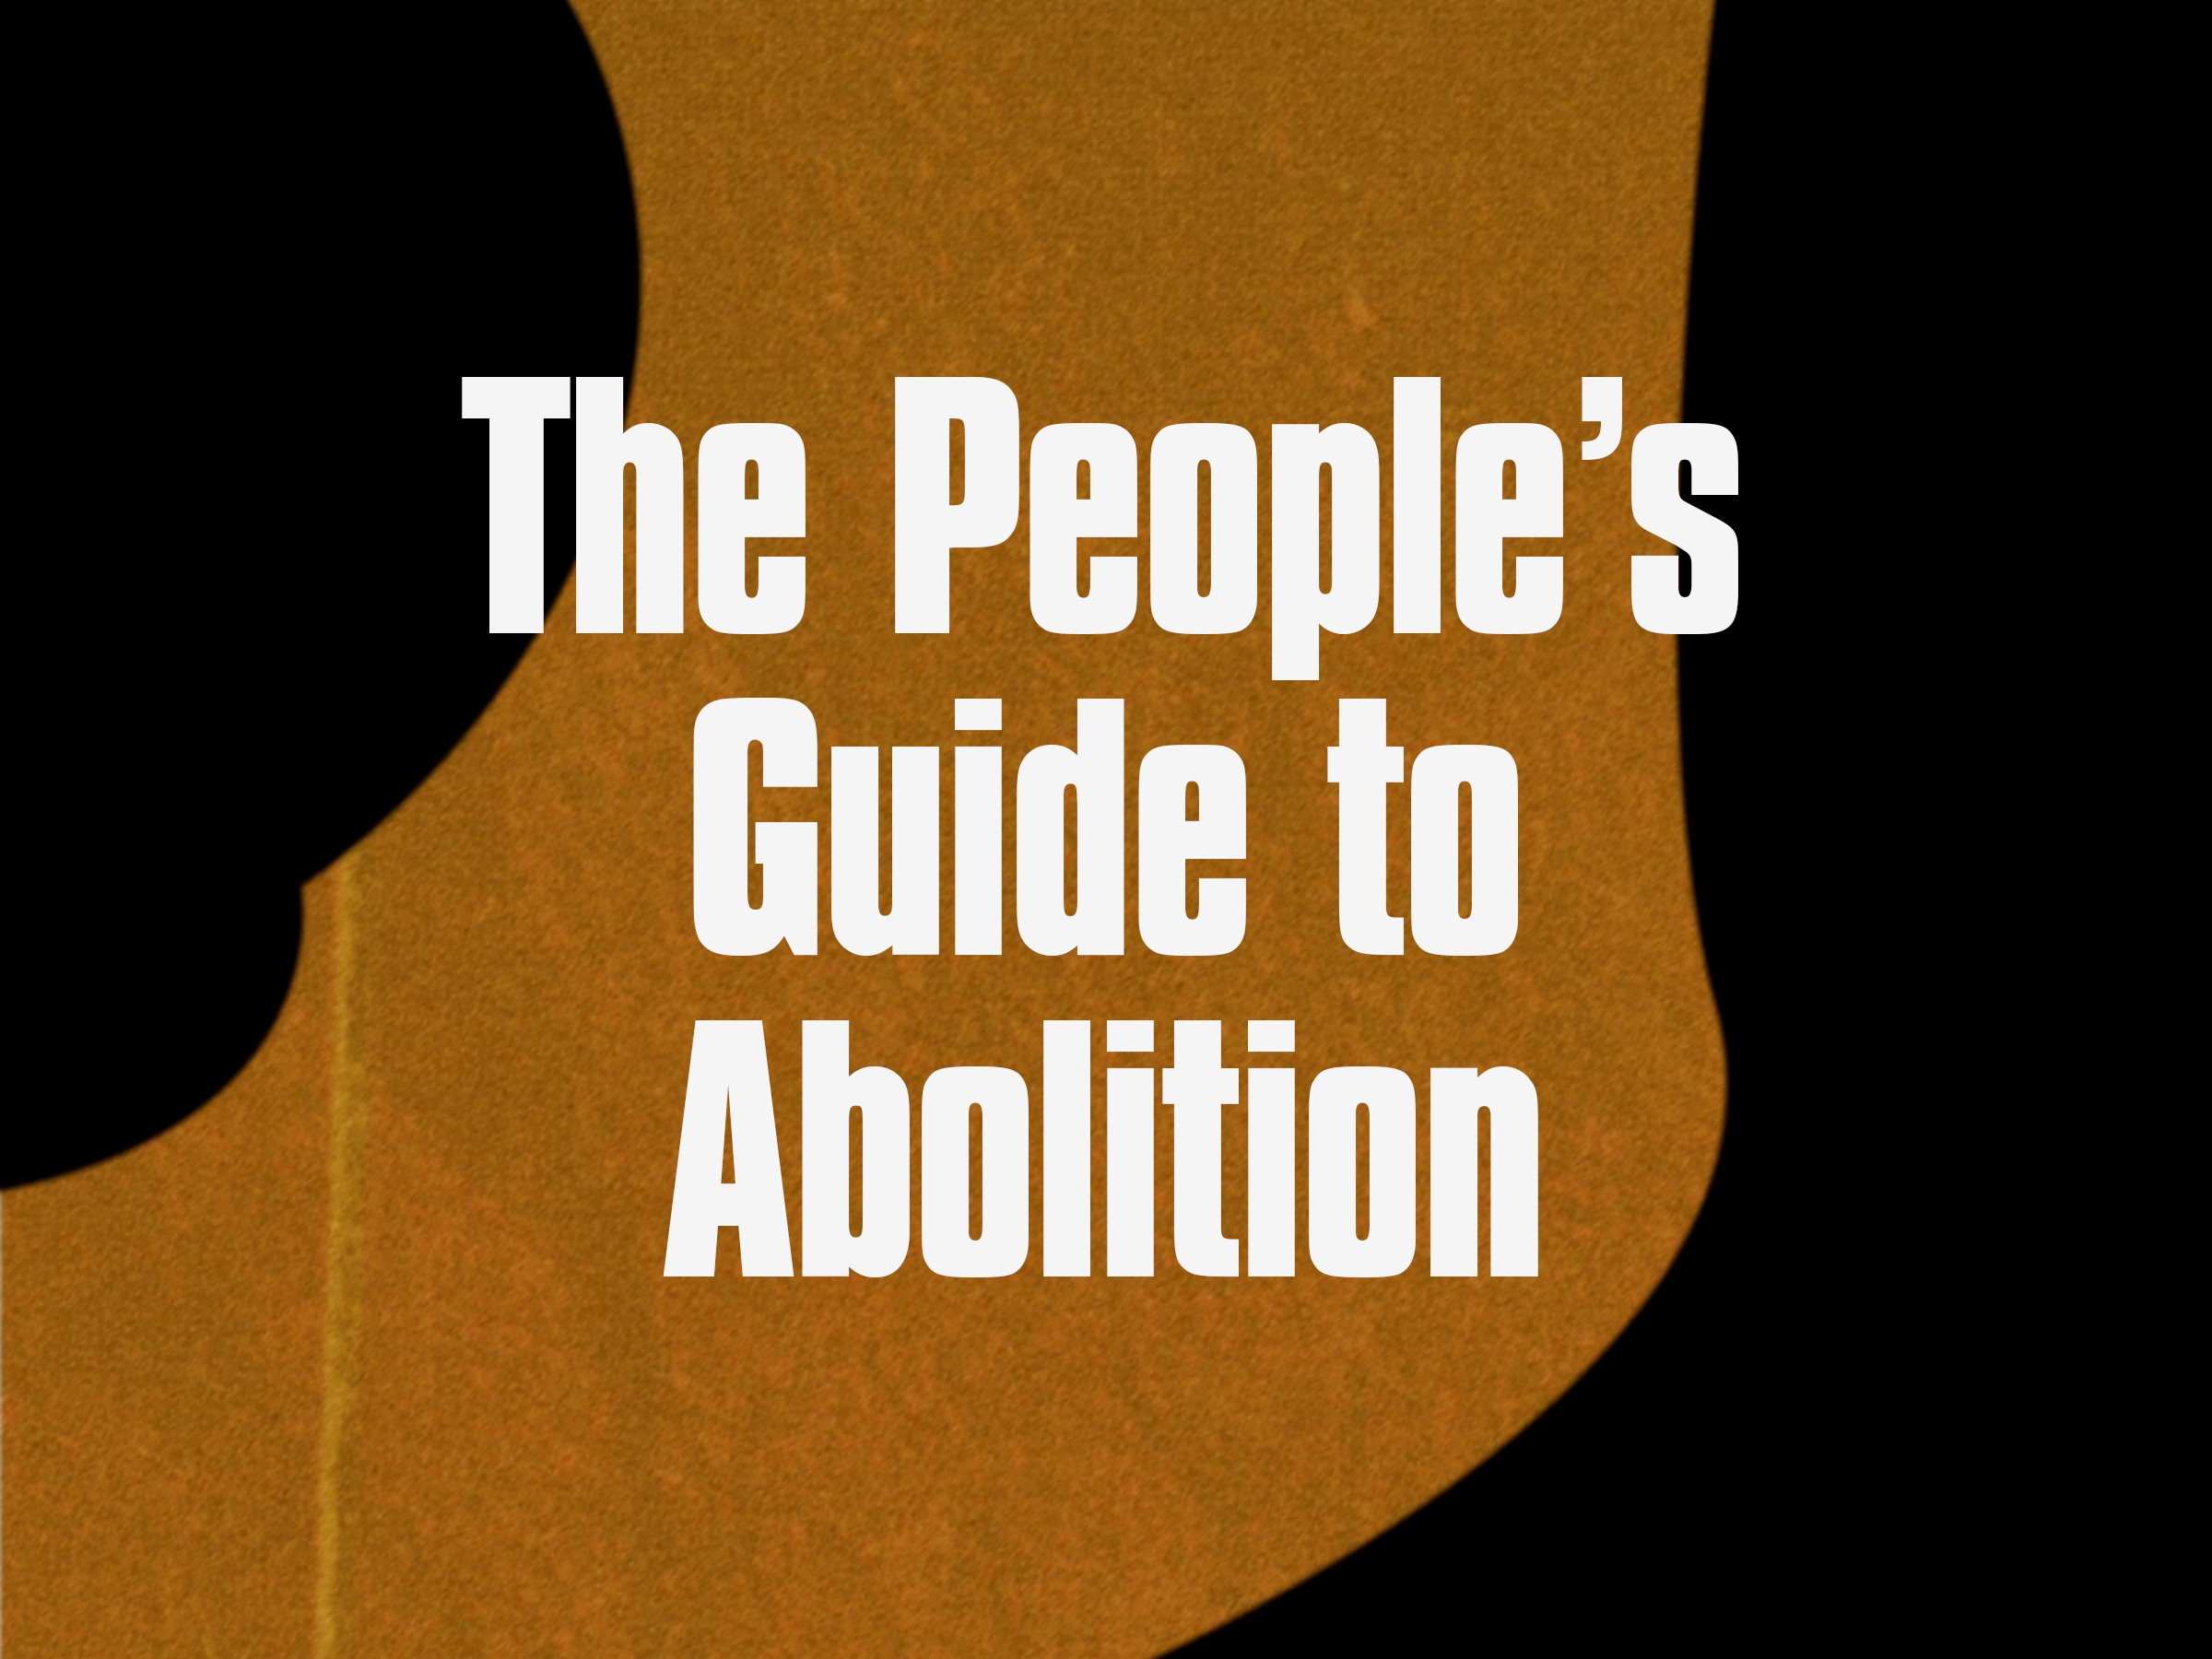 The People's Guide to Abolition